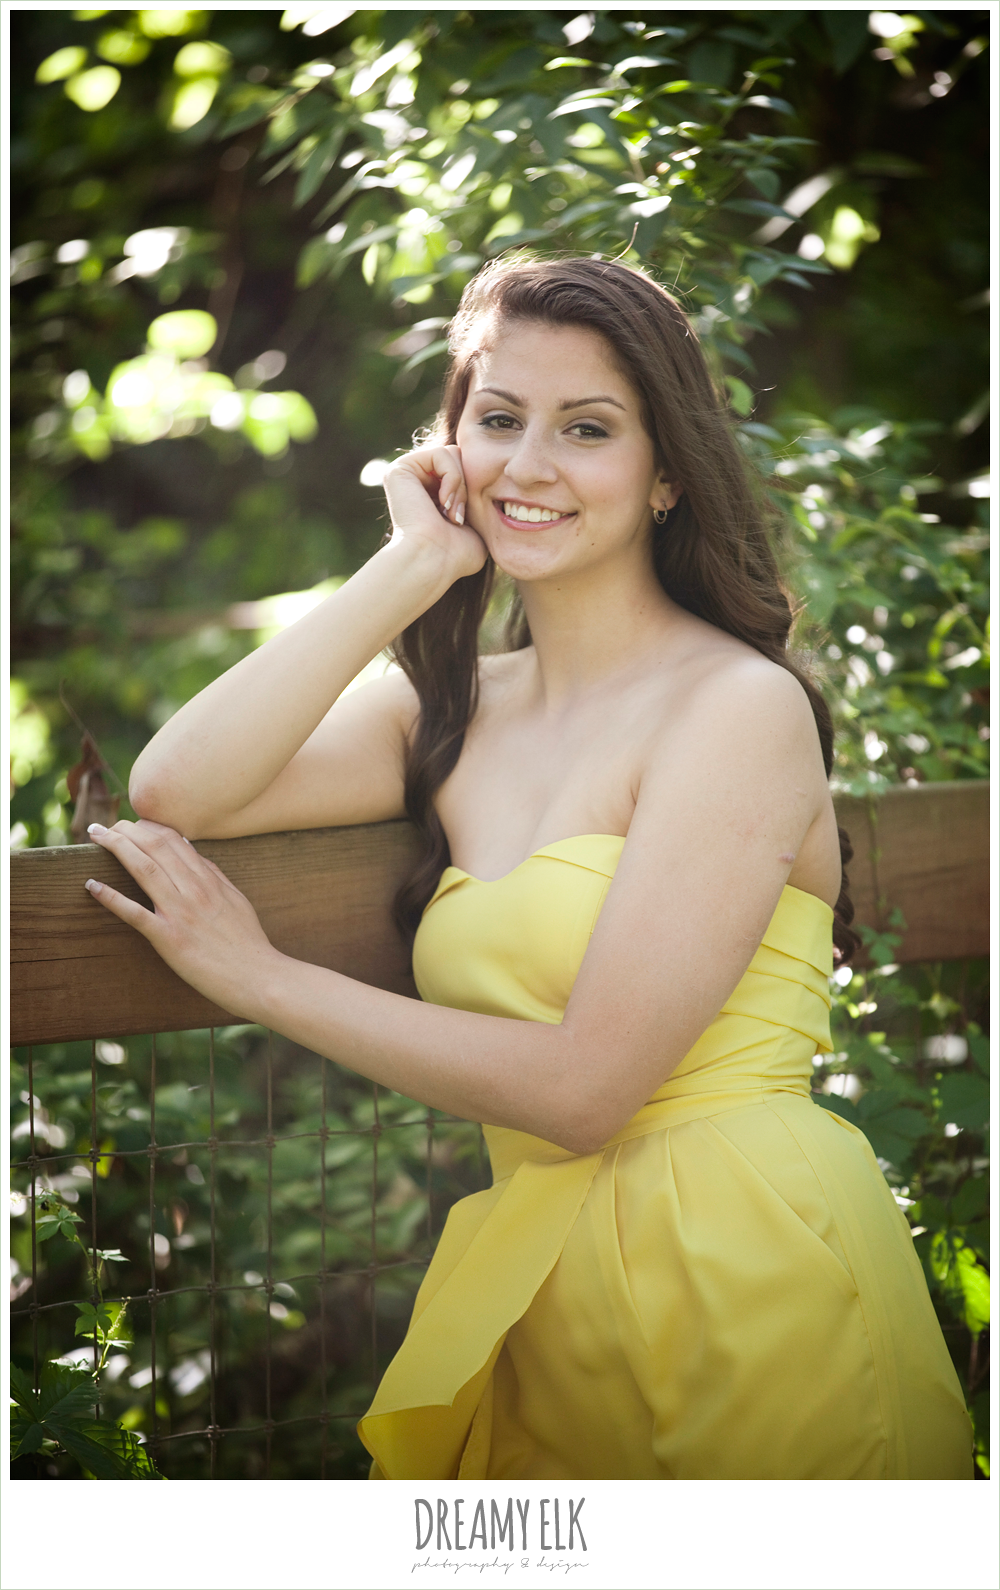 evan high school senior yellow dress leaning against fence